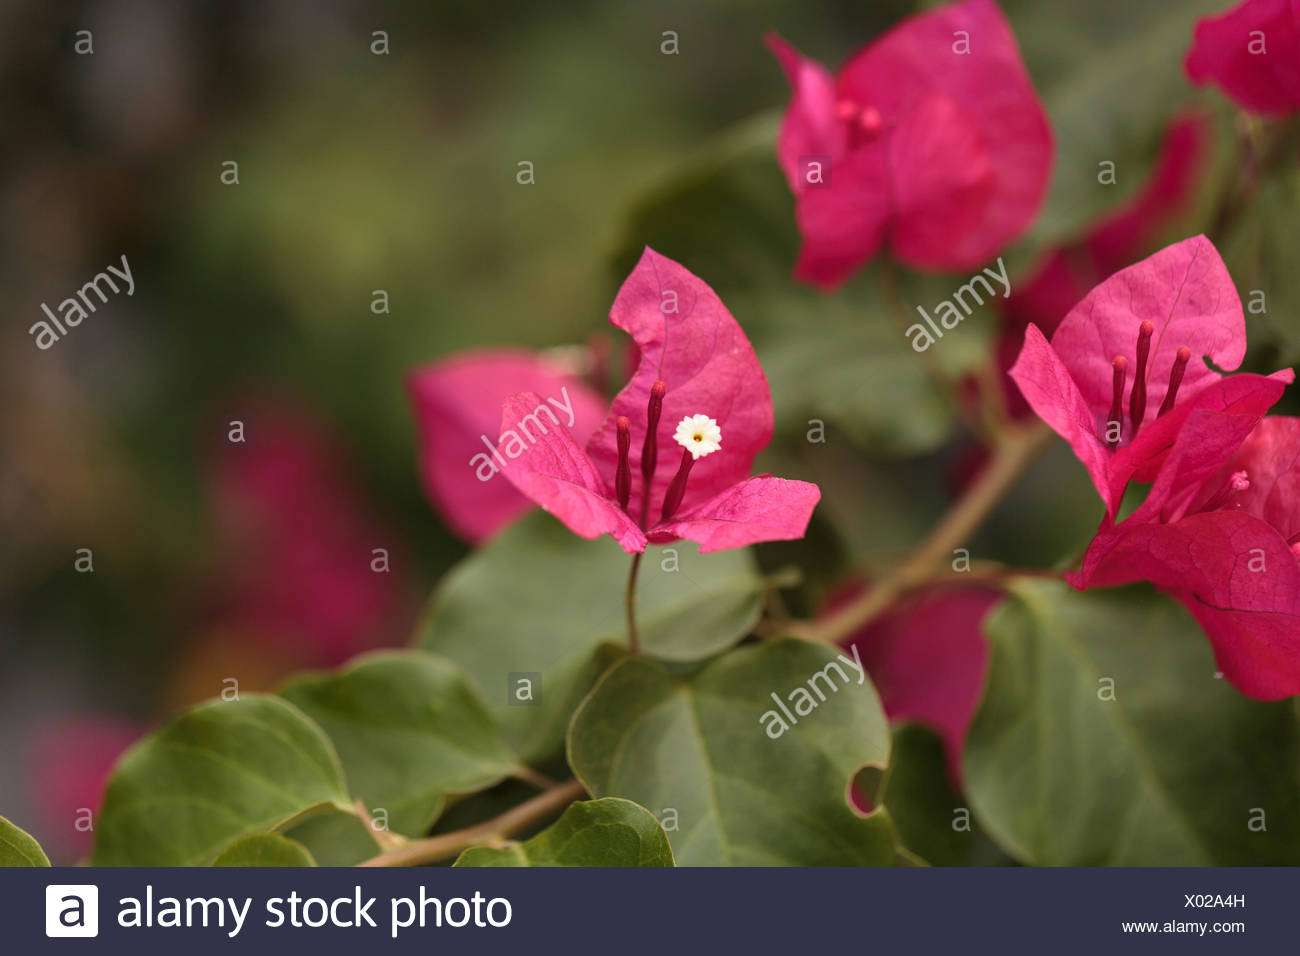 Pink Flowers On A Bougainvillea Bush Vine Grows And Is Prolific